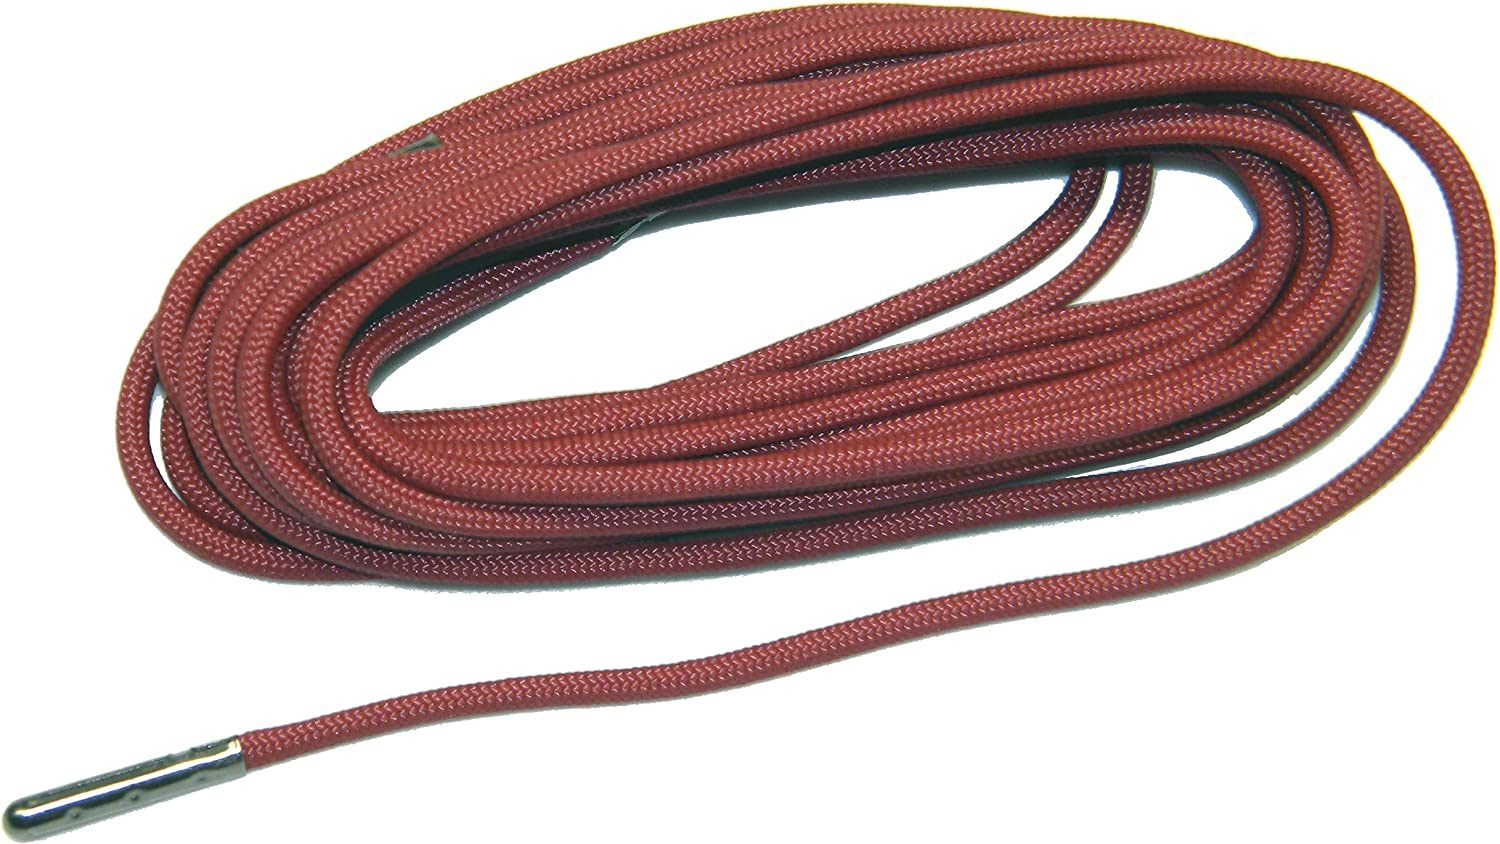 Amazon Com Greatlaces Burgundy Red Wine 550 Paracord Shoelaces Boot Laces Strongest Laces Available 2 Pair Pack Shoes